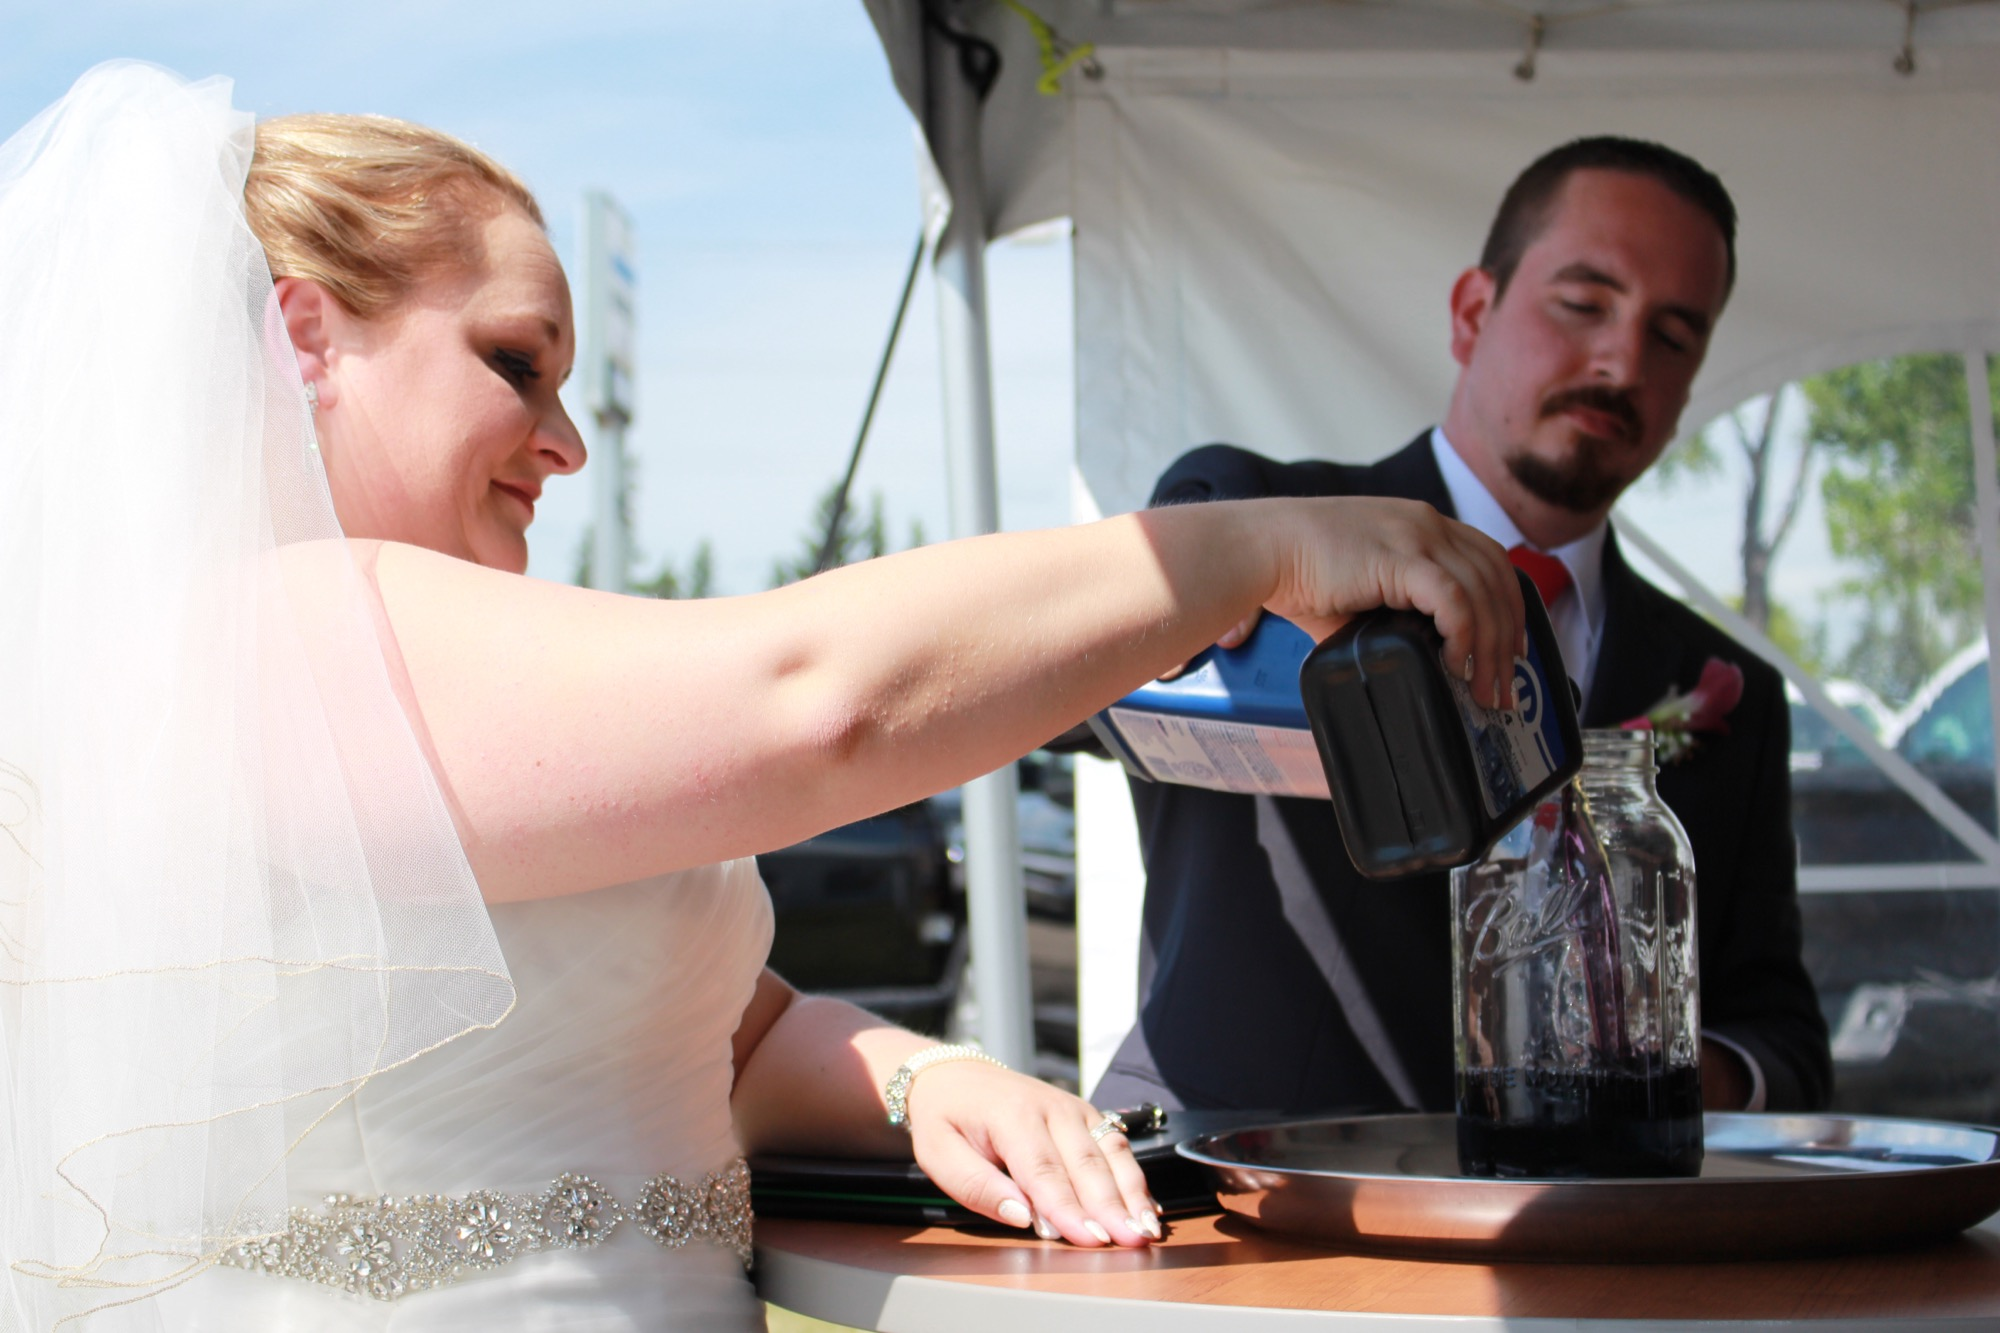 Tanya Magee and Shaun Alexander tied the knot in the parking lot between their respective car dealerships of employment — Murray Chrysler Dodge Jeep Ram Westman and Murray Chevrolet Cadillac Buick GMC Brandon — on Saturday. They ended the emotional ceremony by mixing two jugs of motor oil together into a mason jar, to symbolize their union.